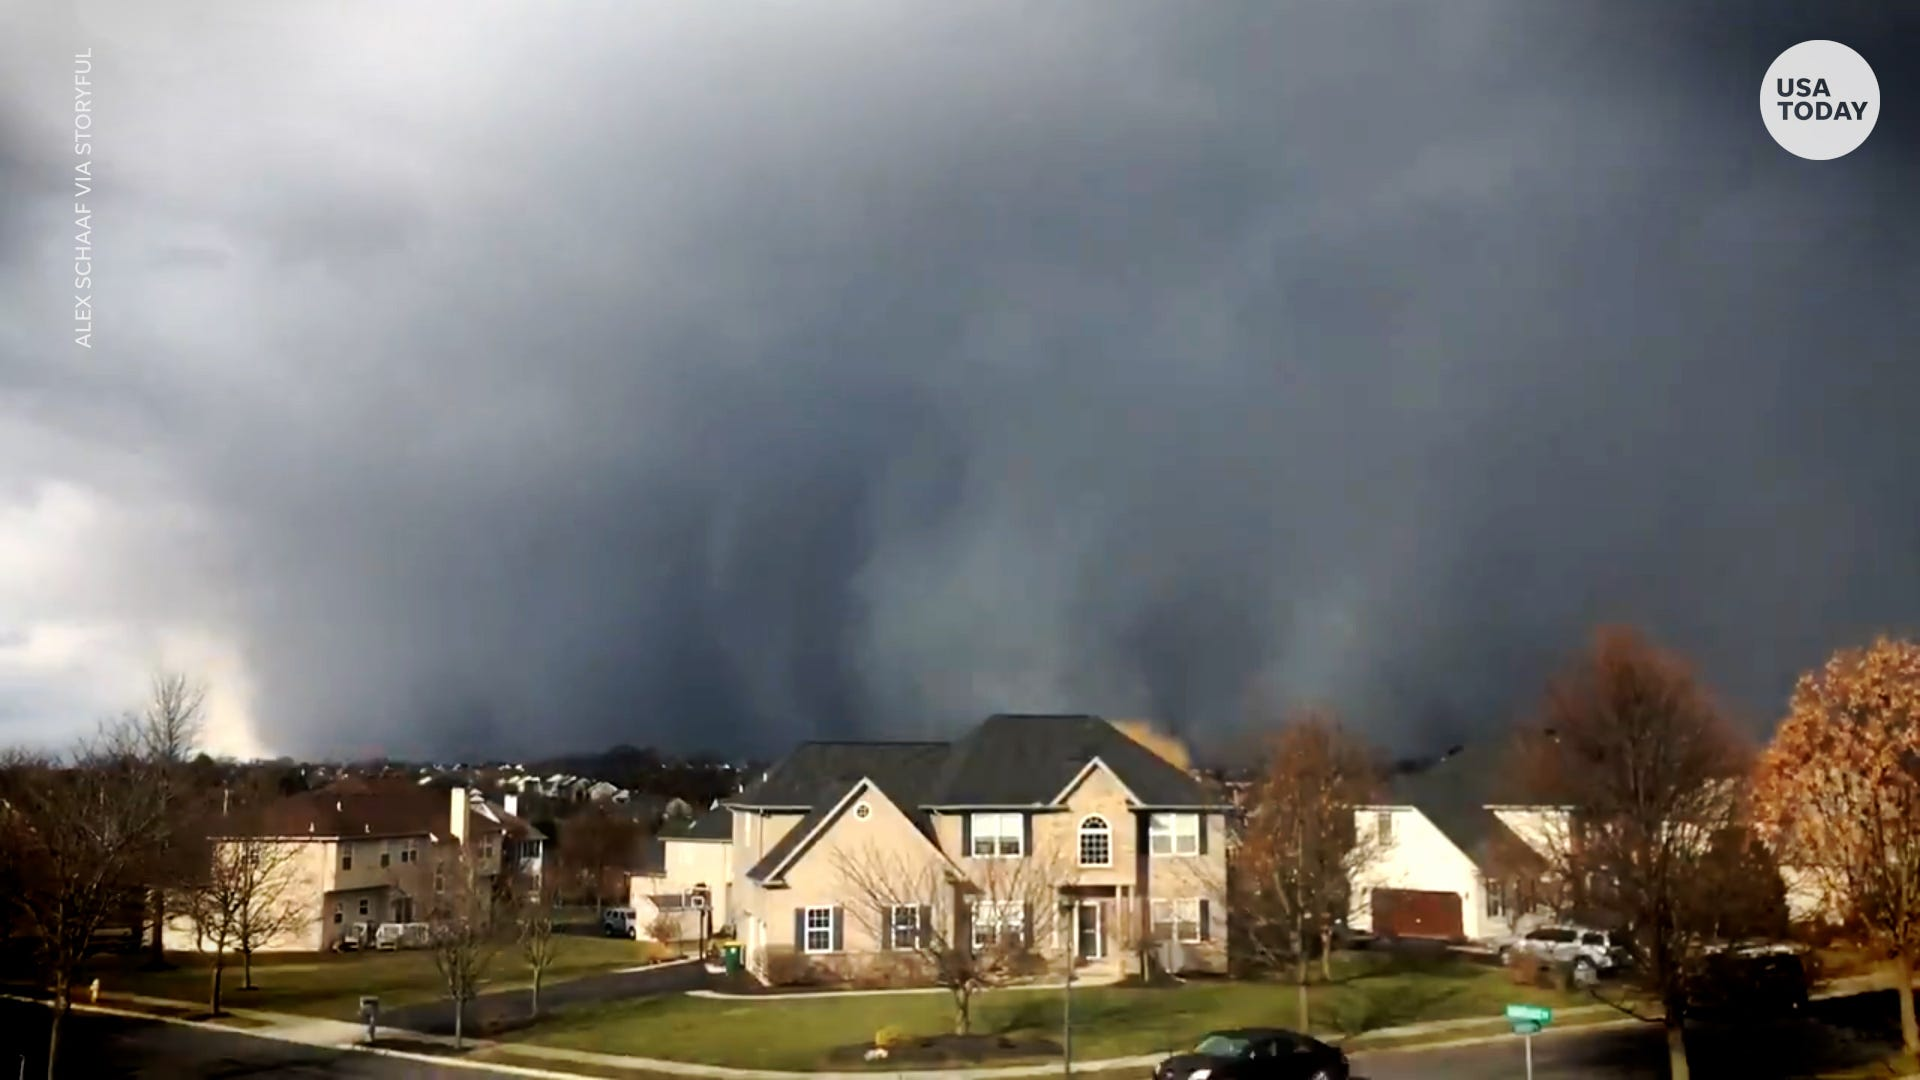 Time lapses show ominous snow squalls envelop northeastern towns